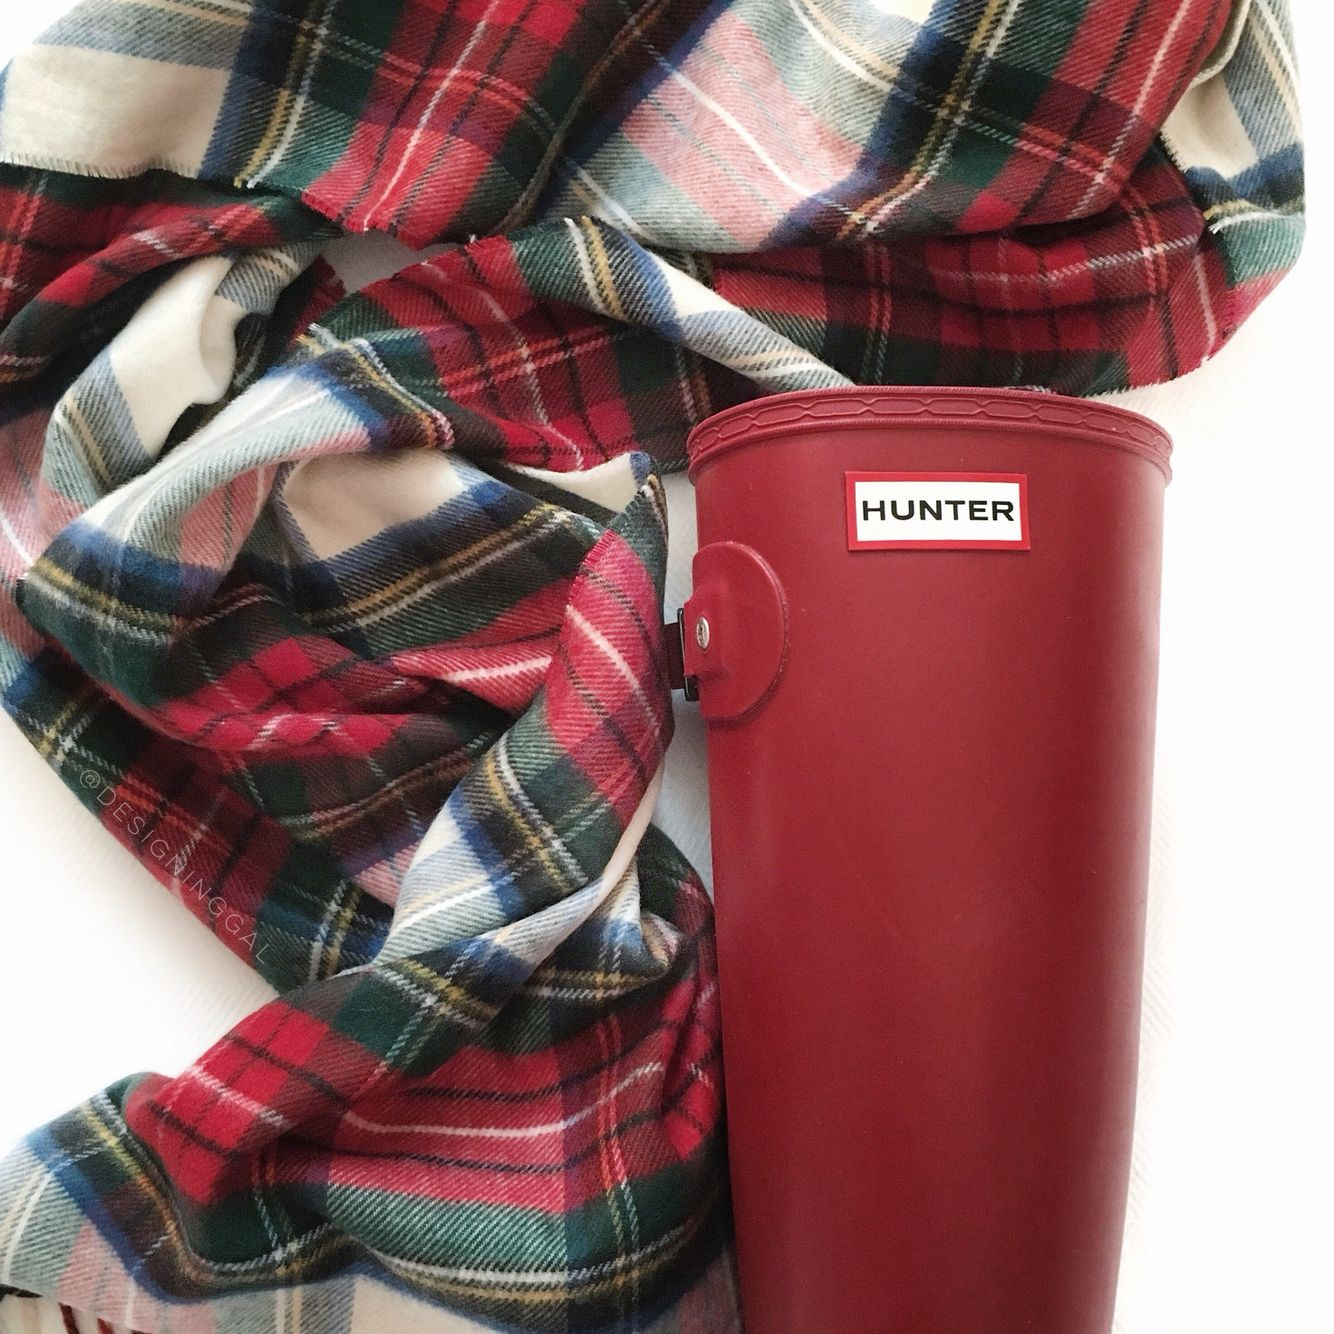 red hunter boots and christmas plaid scarf - Christmas Plaid Scarf